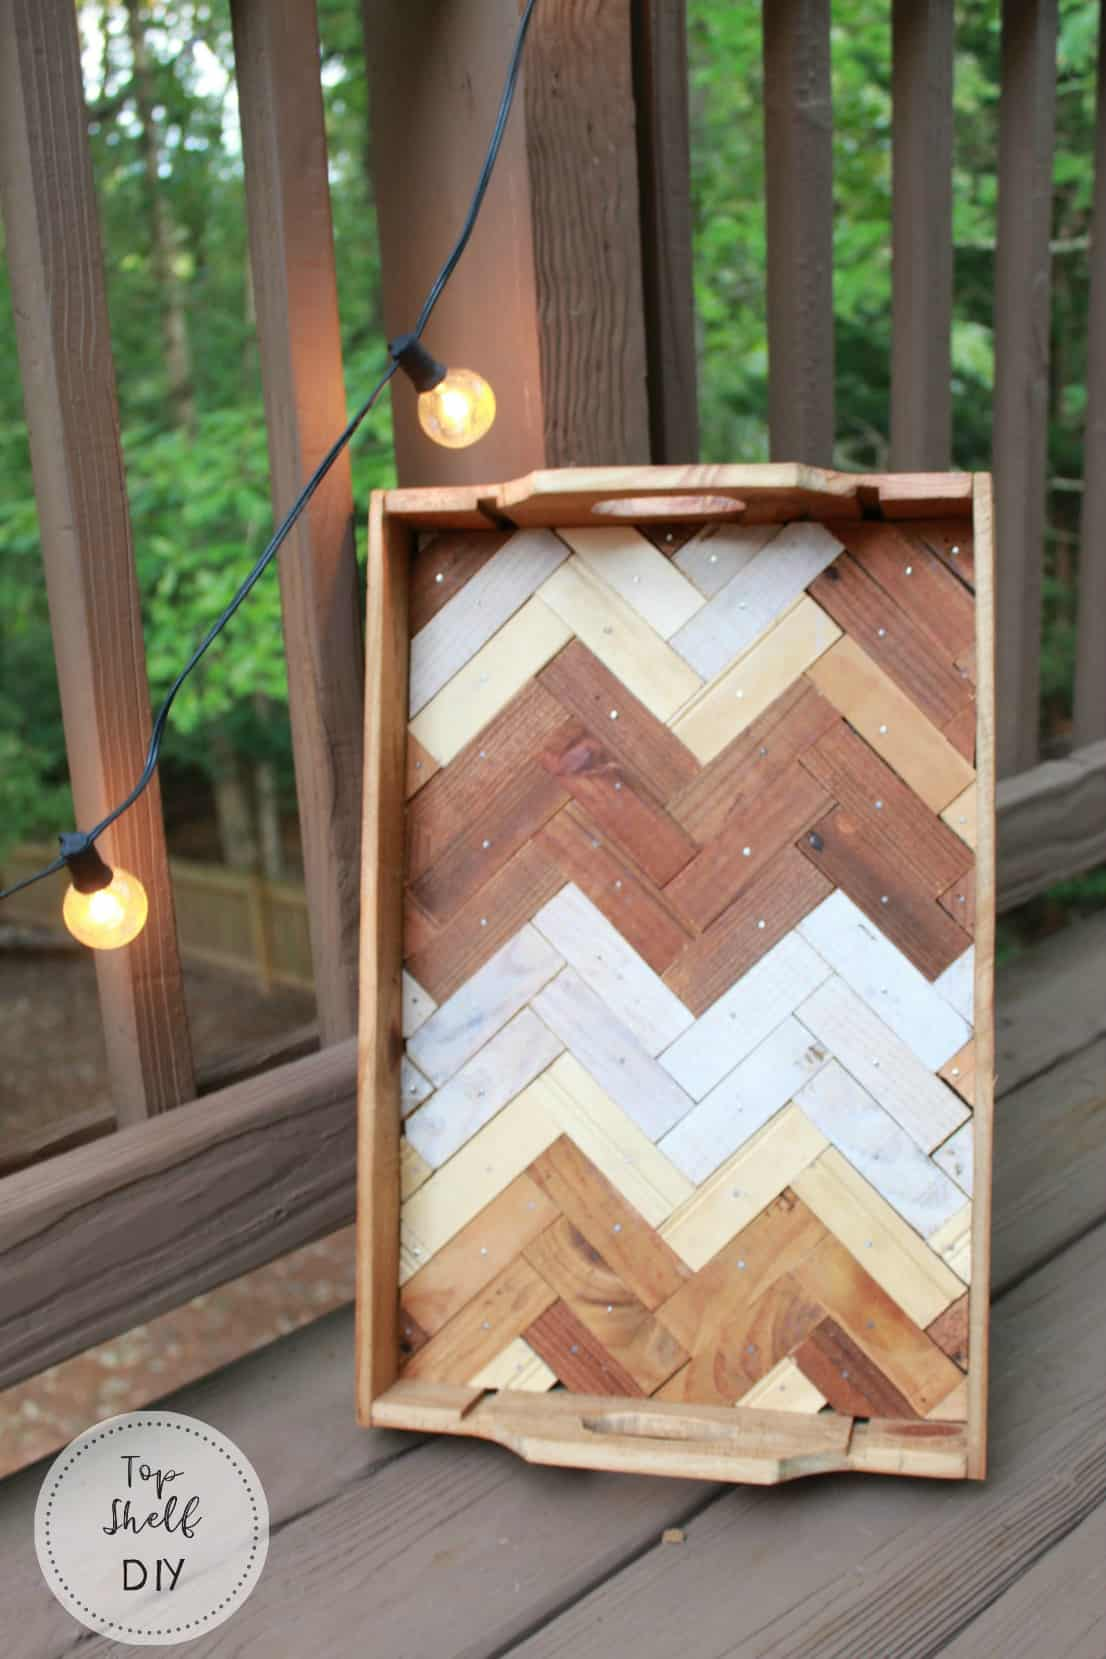 Make this herringbone tray from a repurposed wine crate! Get the full rundown here.